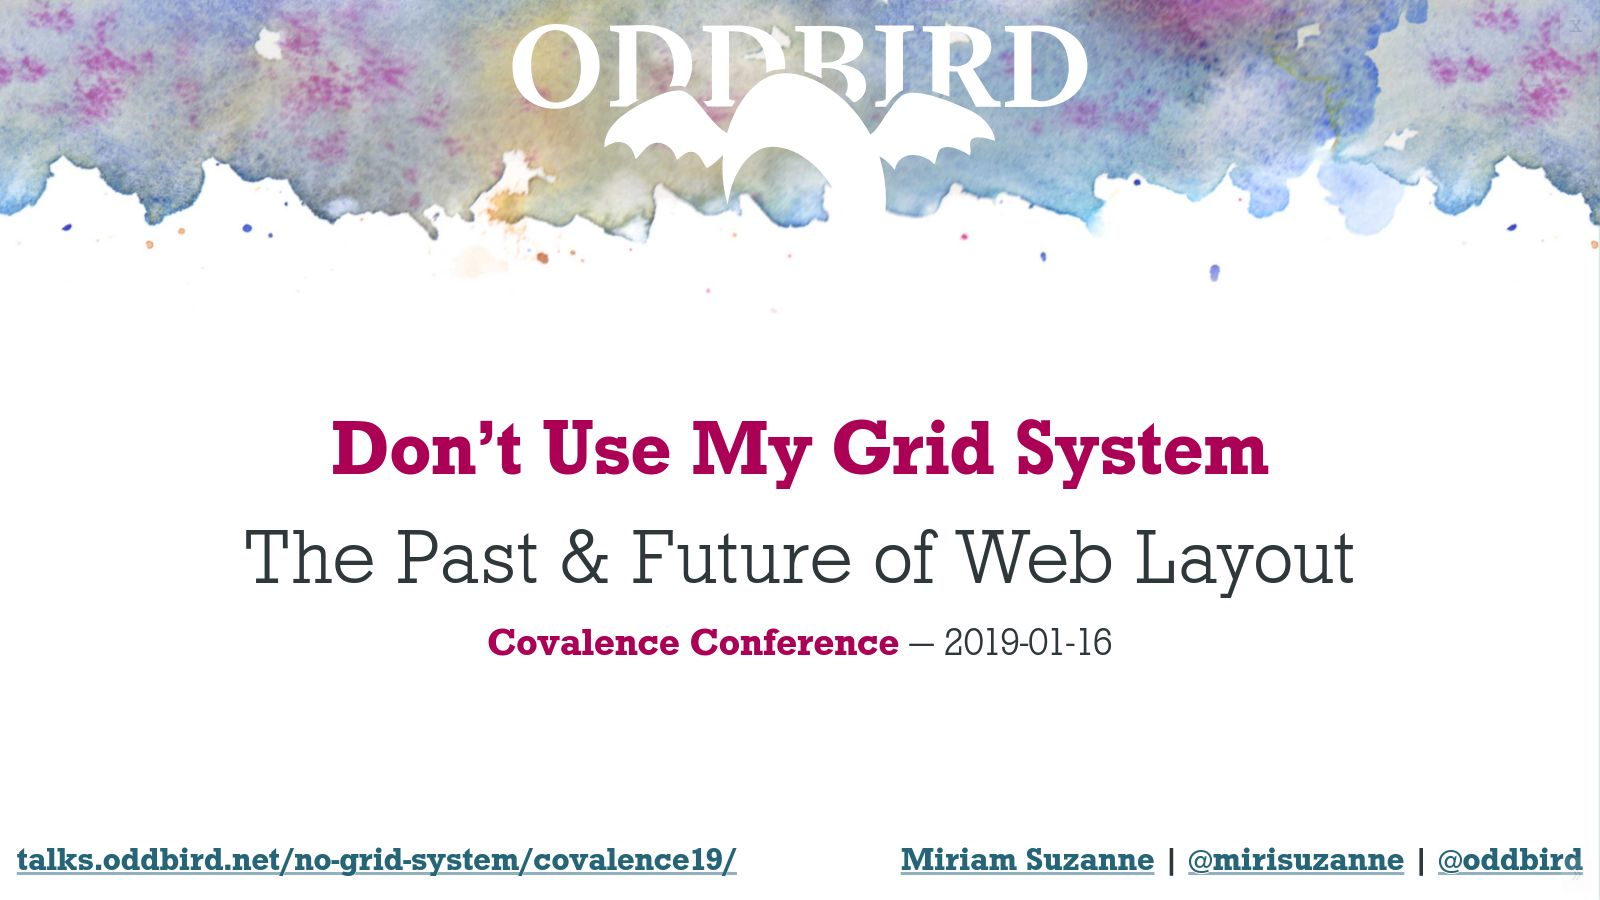 Don't Use My Grid System (or any others) by Miriam Suzanne